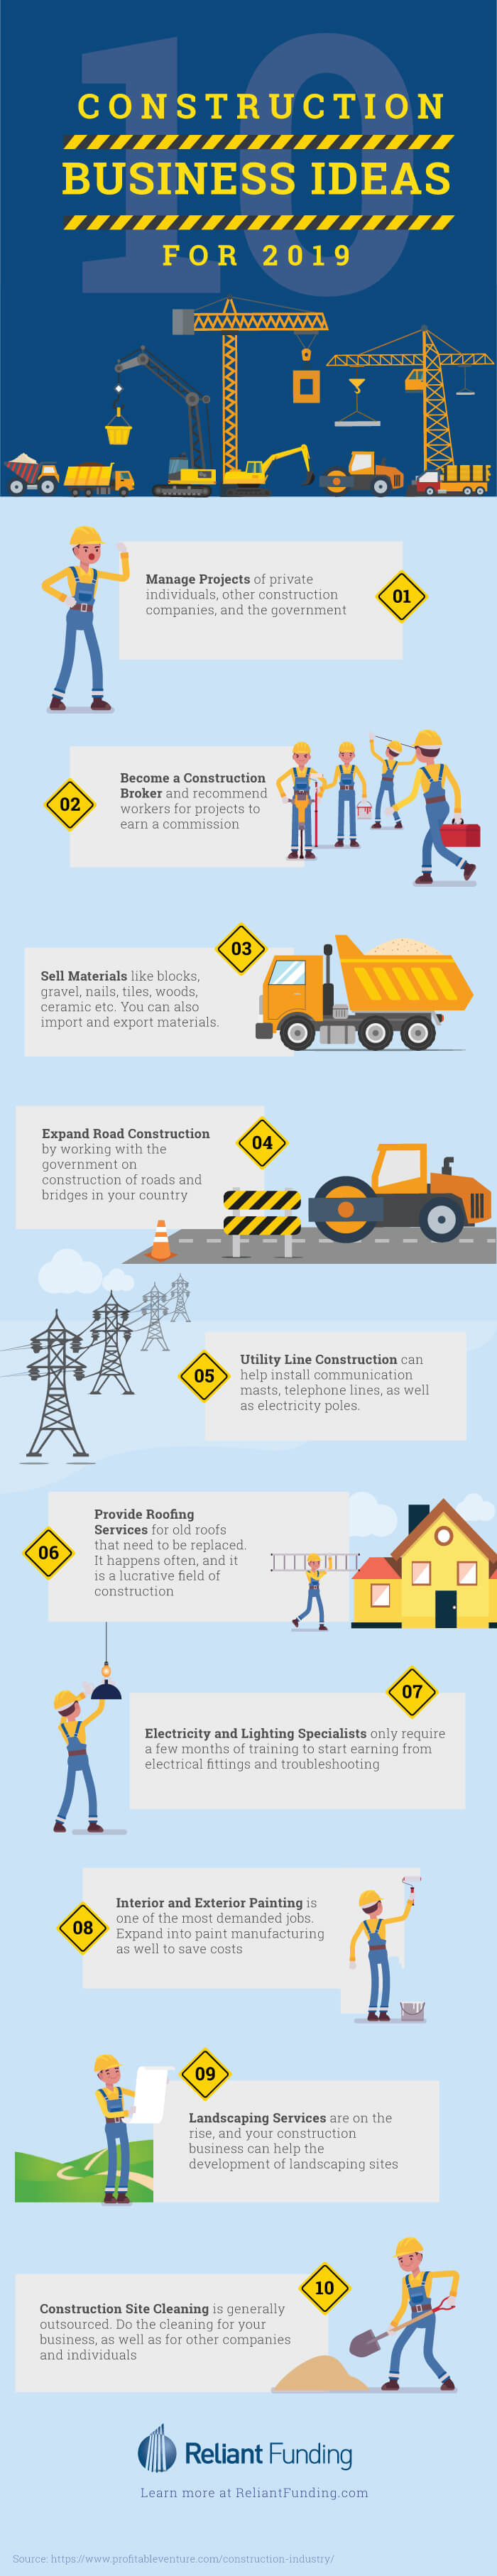 Construction Business Ideas for 2019